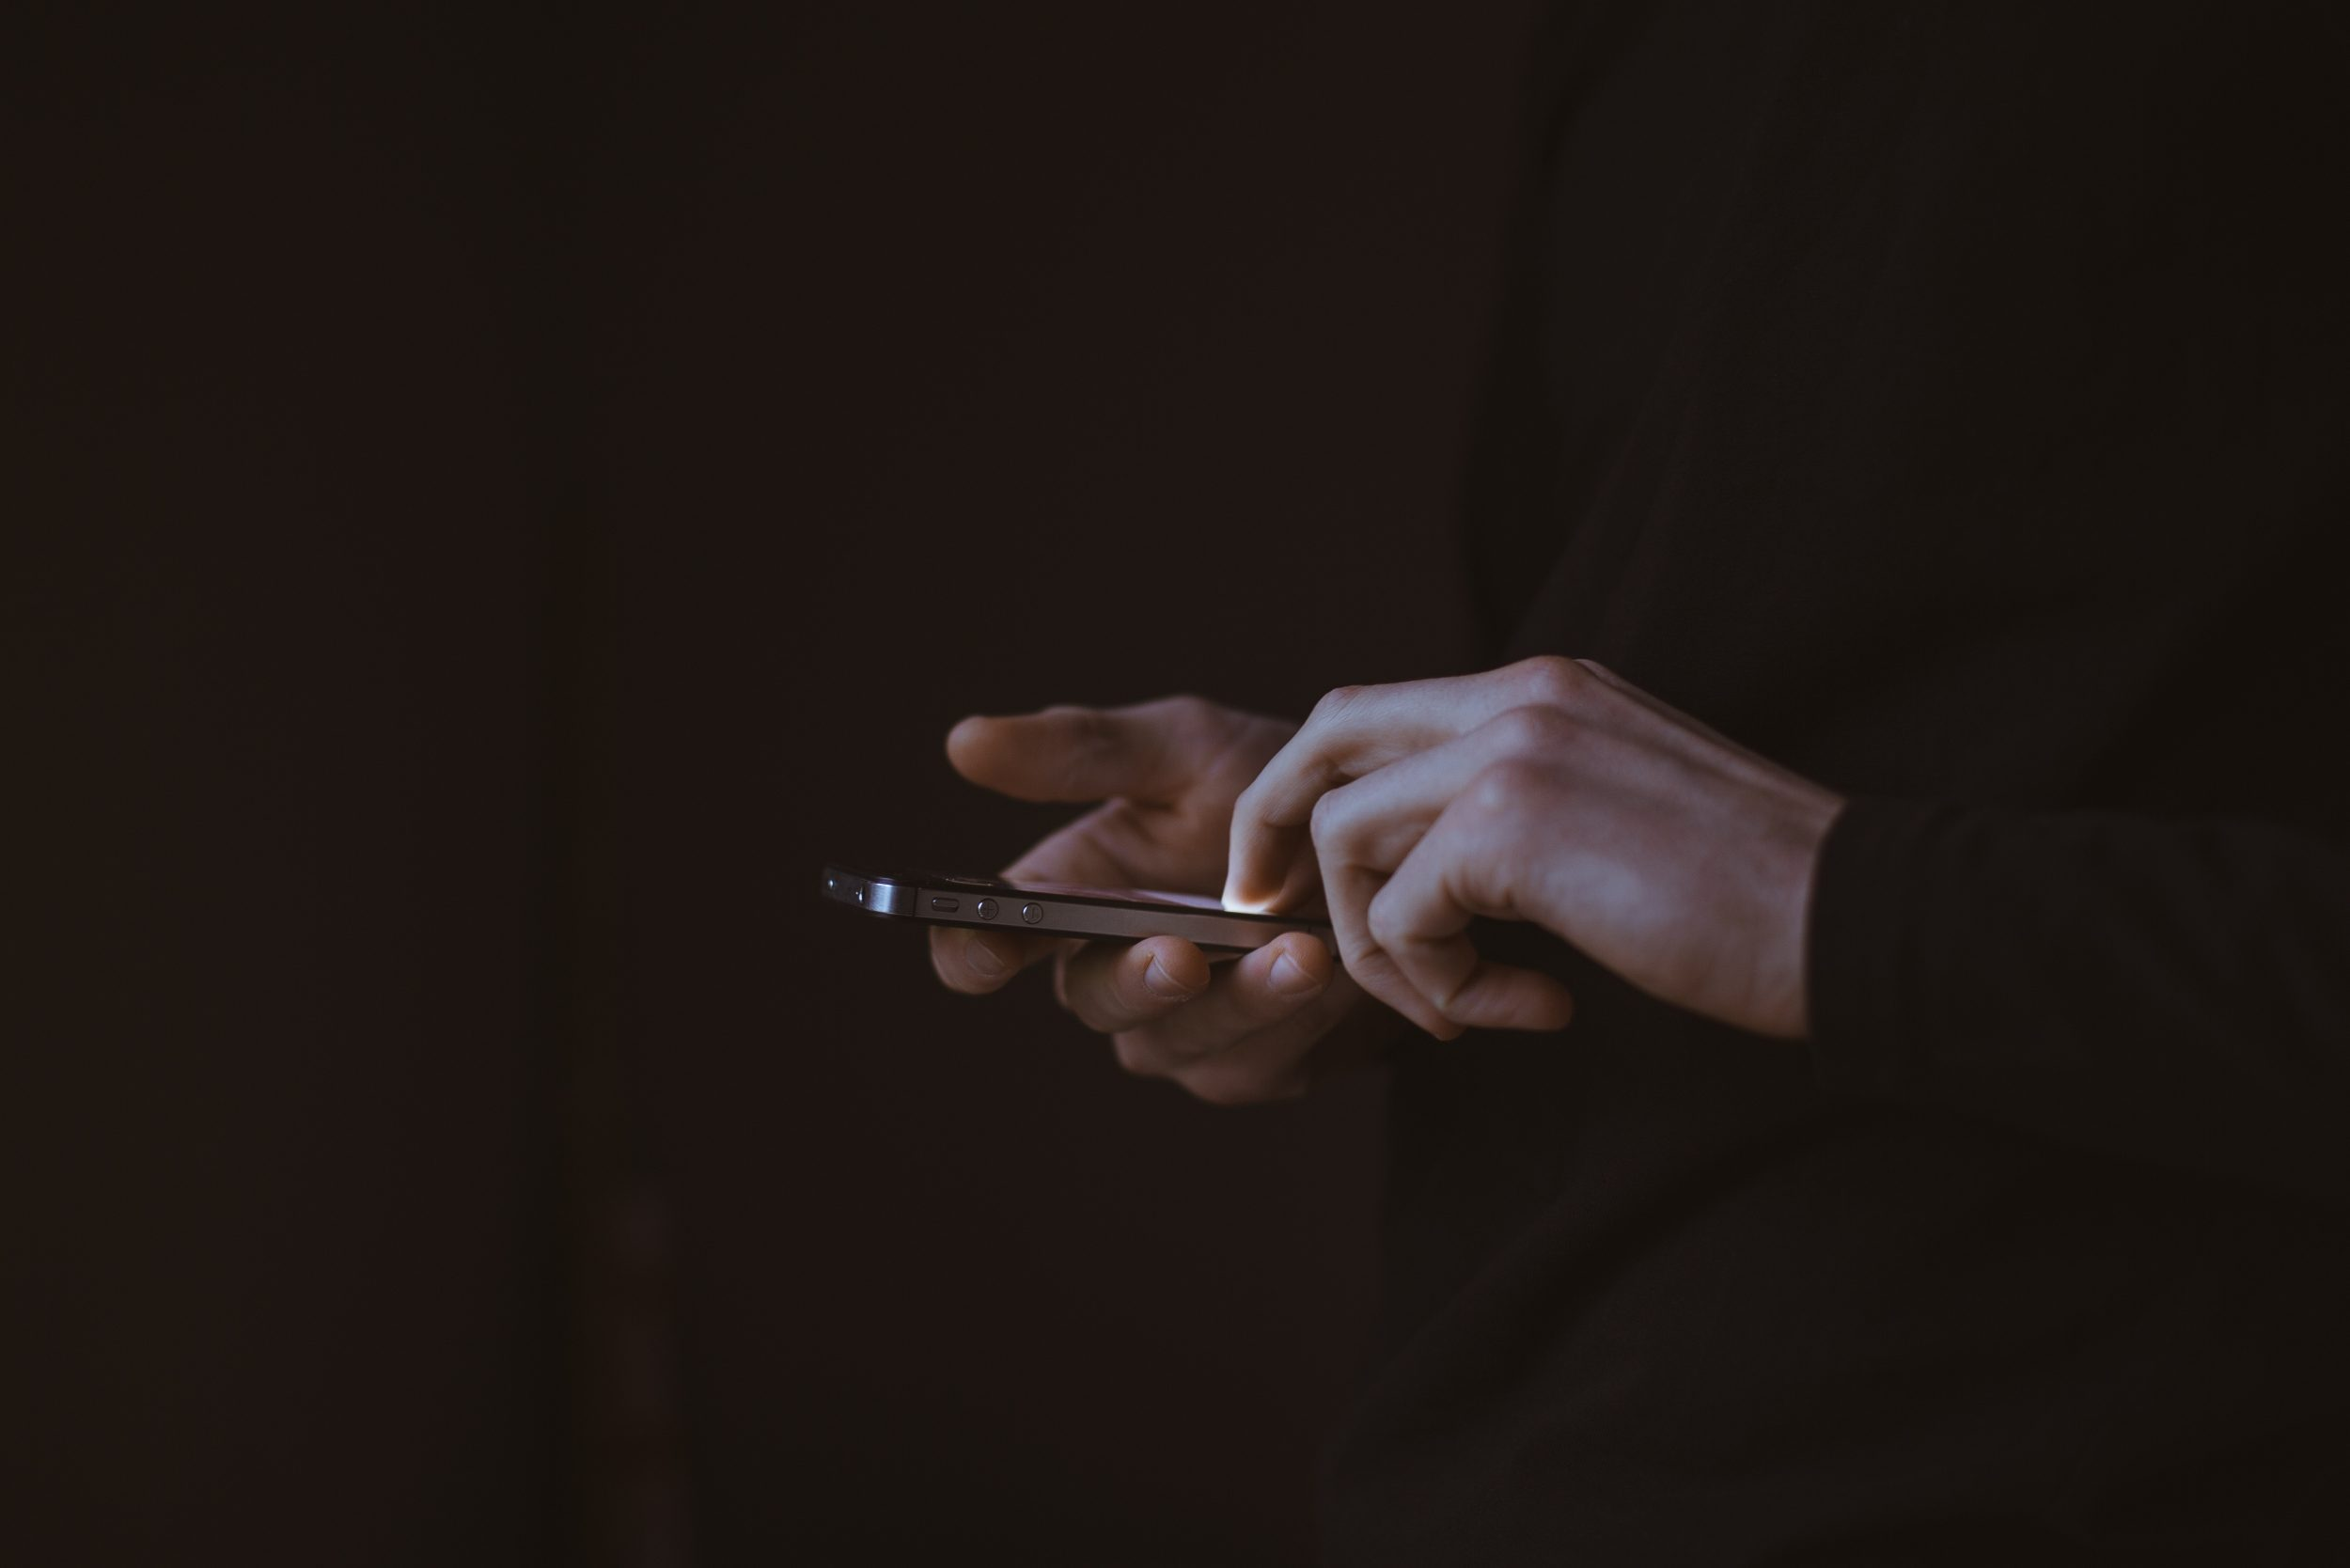 Smartphone addiction and nomophobia